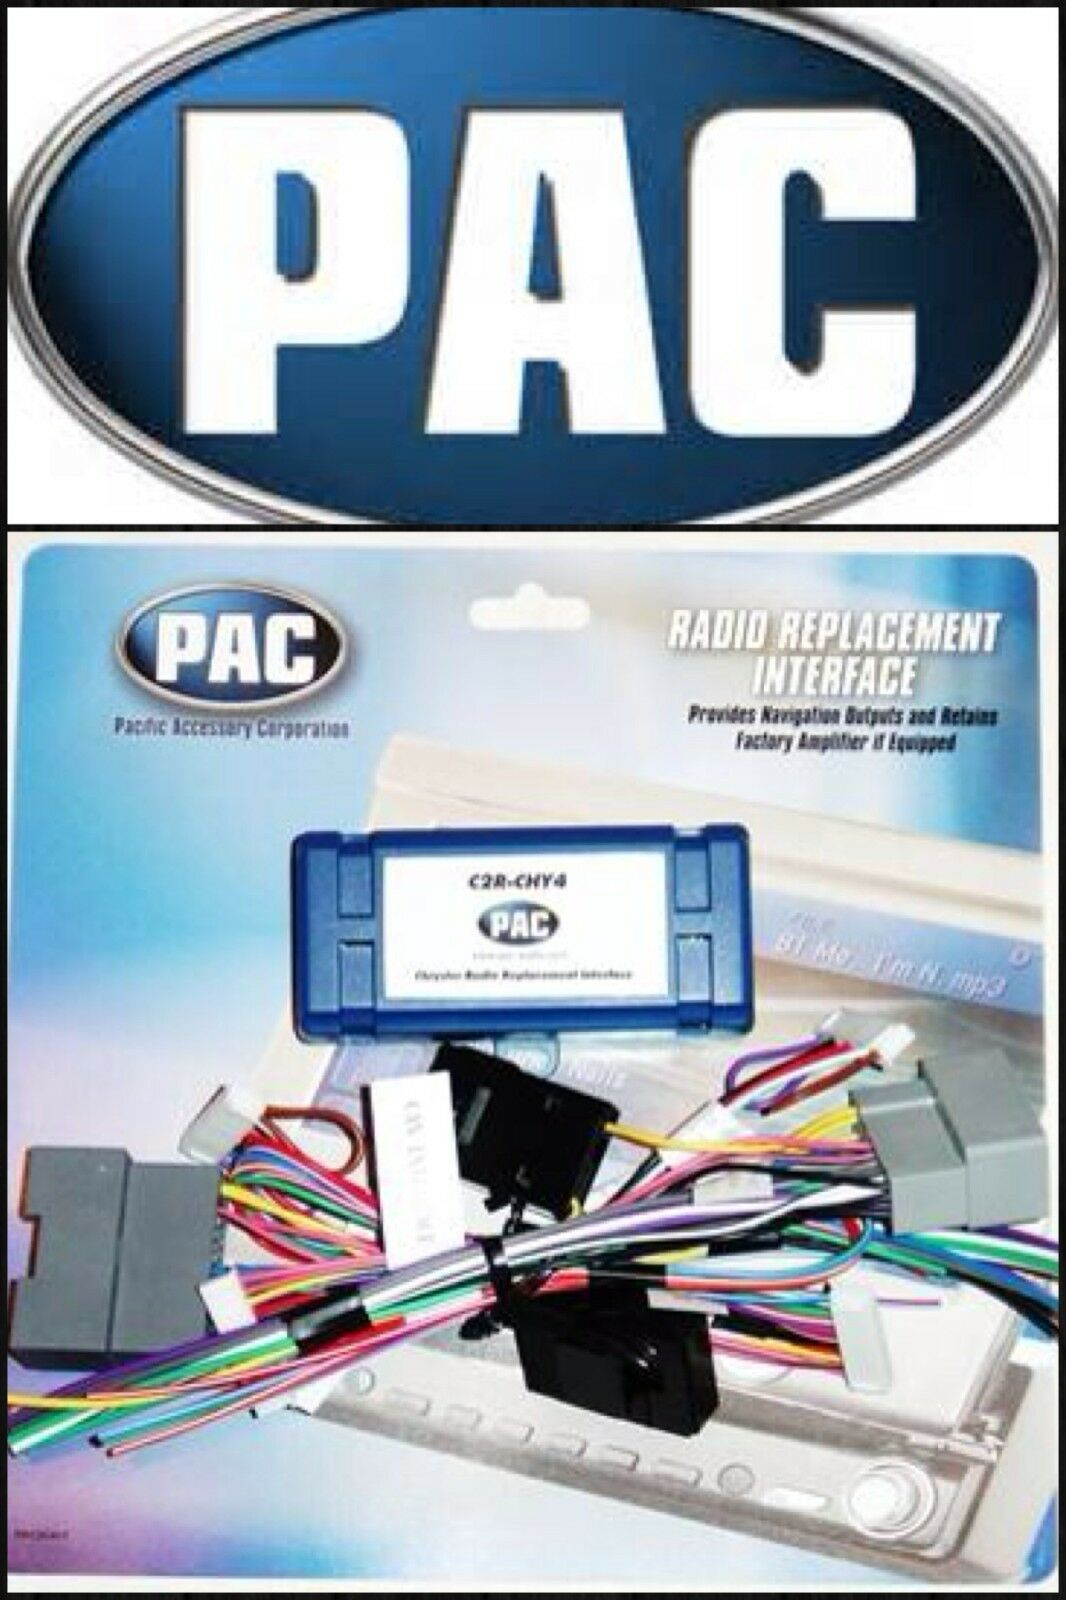 Radio Replacement Wire Harness Interface for Select Chrysler Dodge Jeep  Vehicles 1 of 1 See More